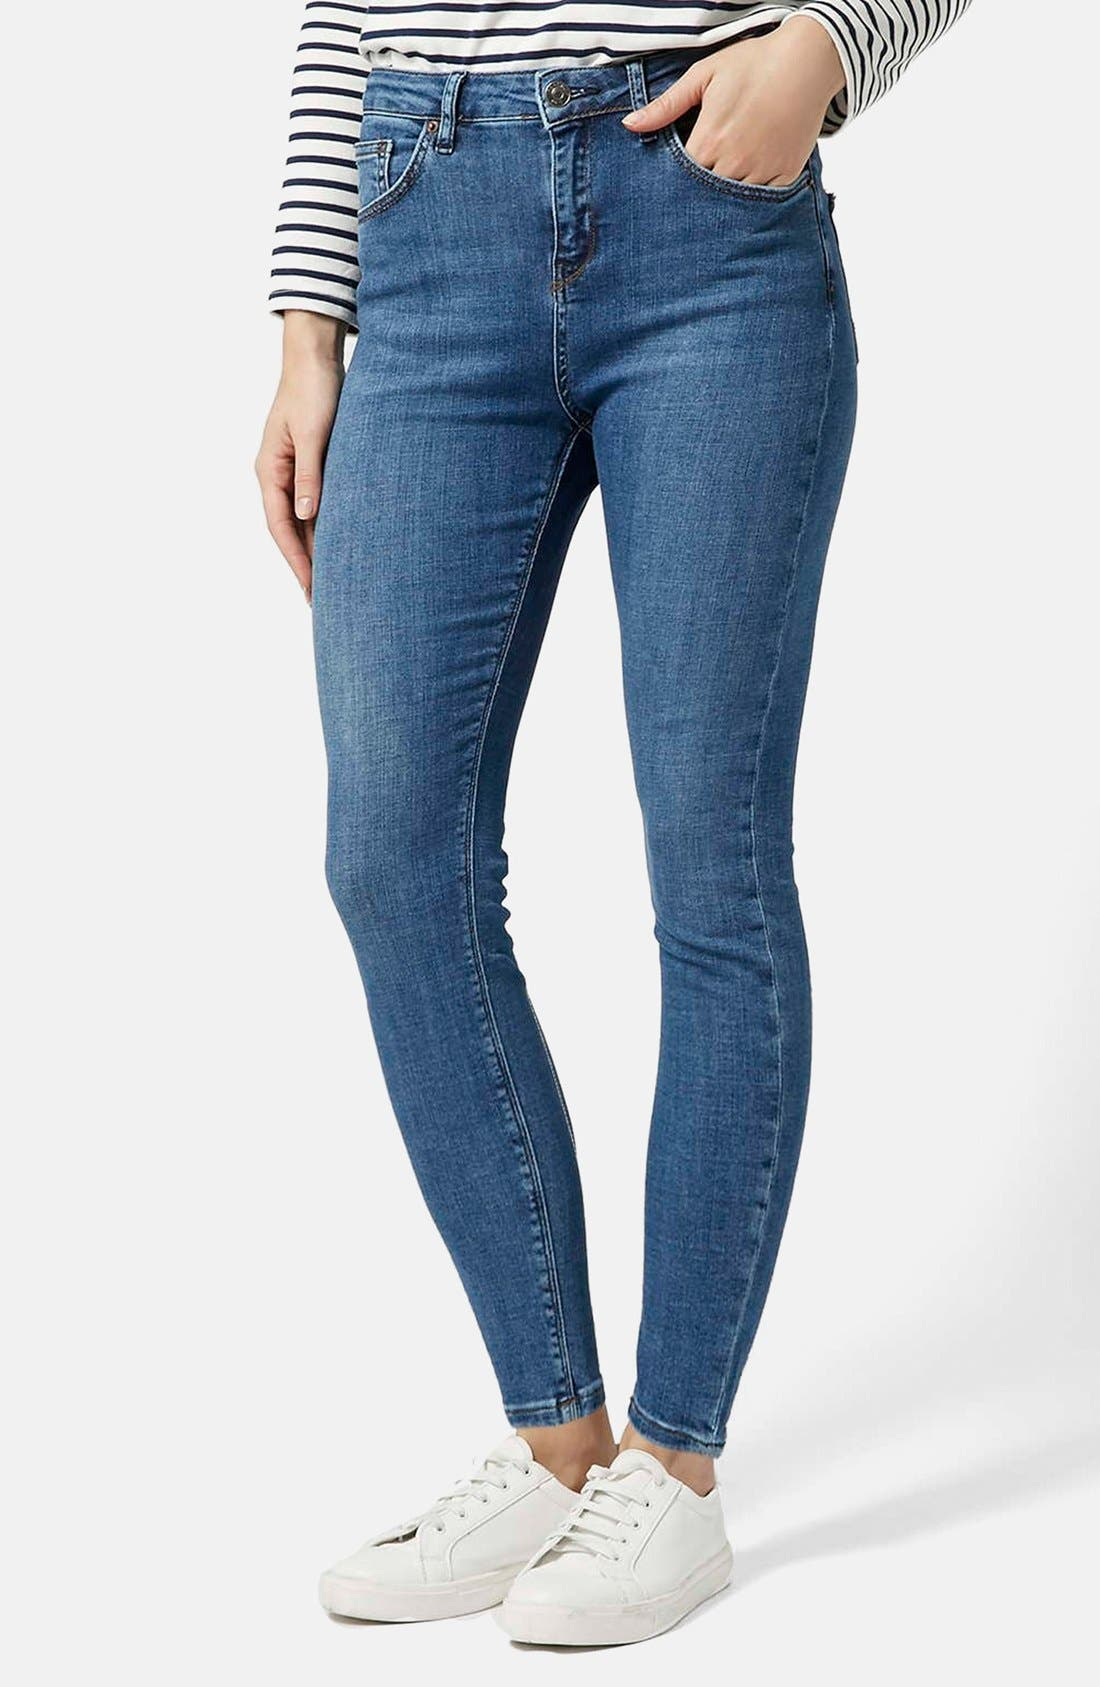 Alternate Image 1 Selected - Topshop Moto 'Cain' High Rise Ankle Jeans (Blue) (Short)